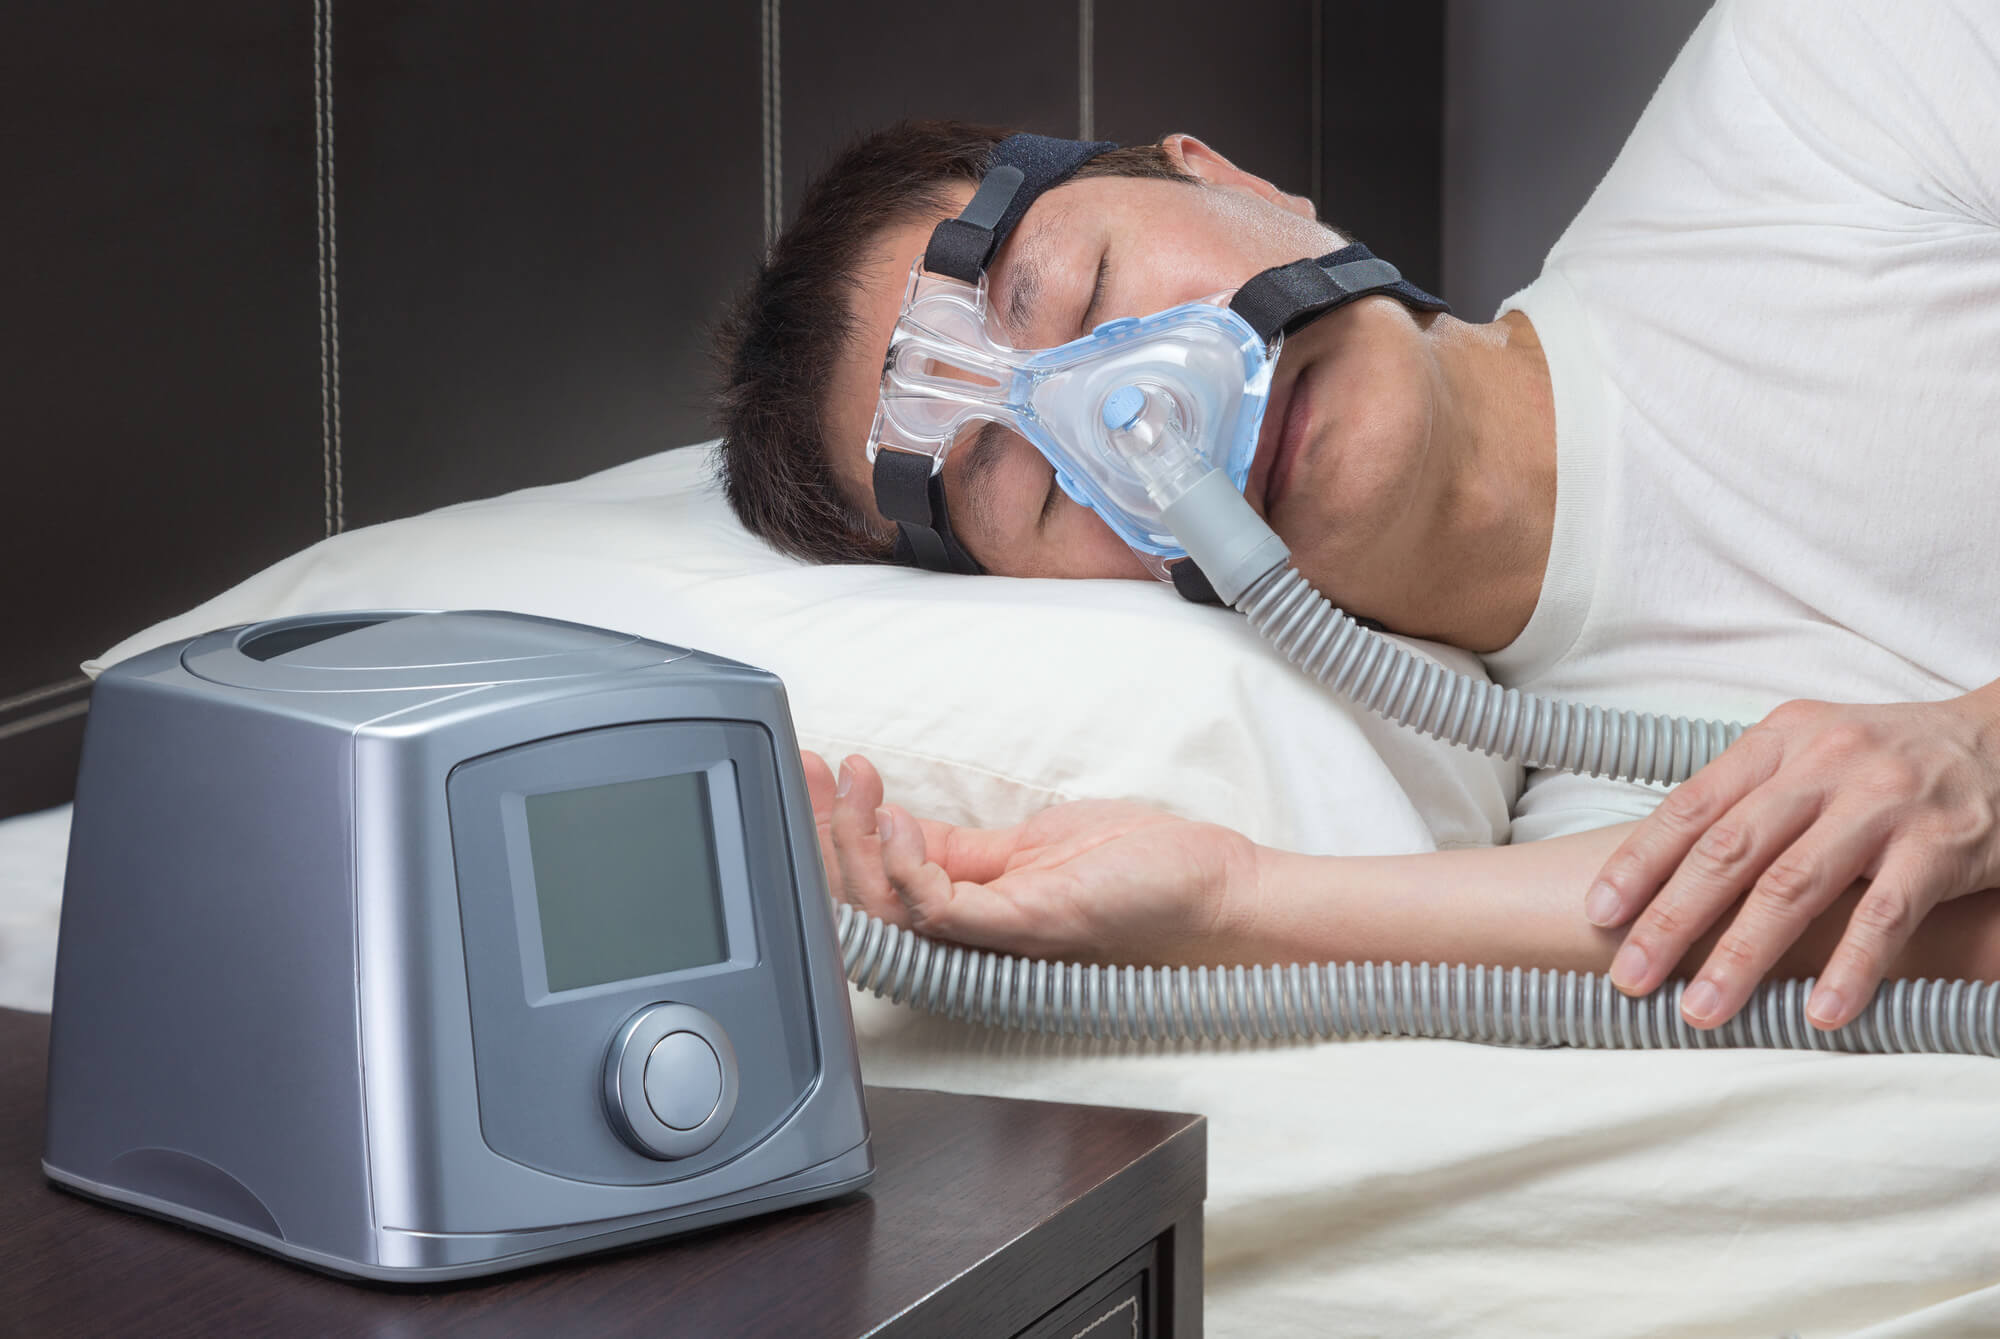 4 Things to Expect from a Sleep Apnea Test